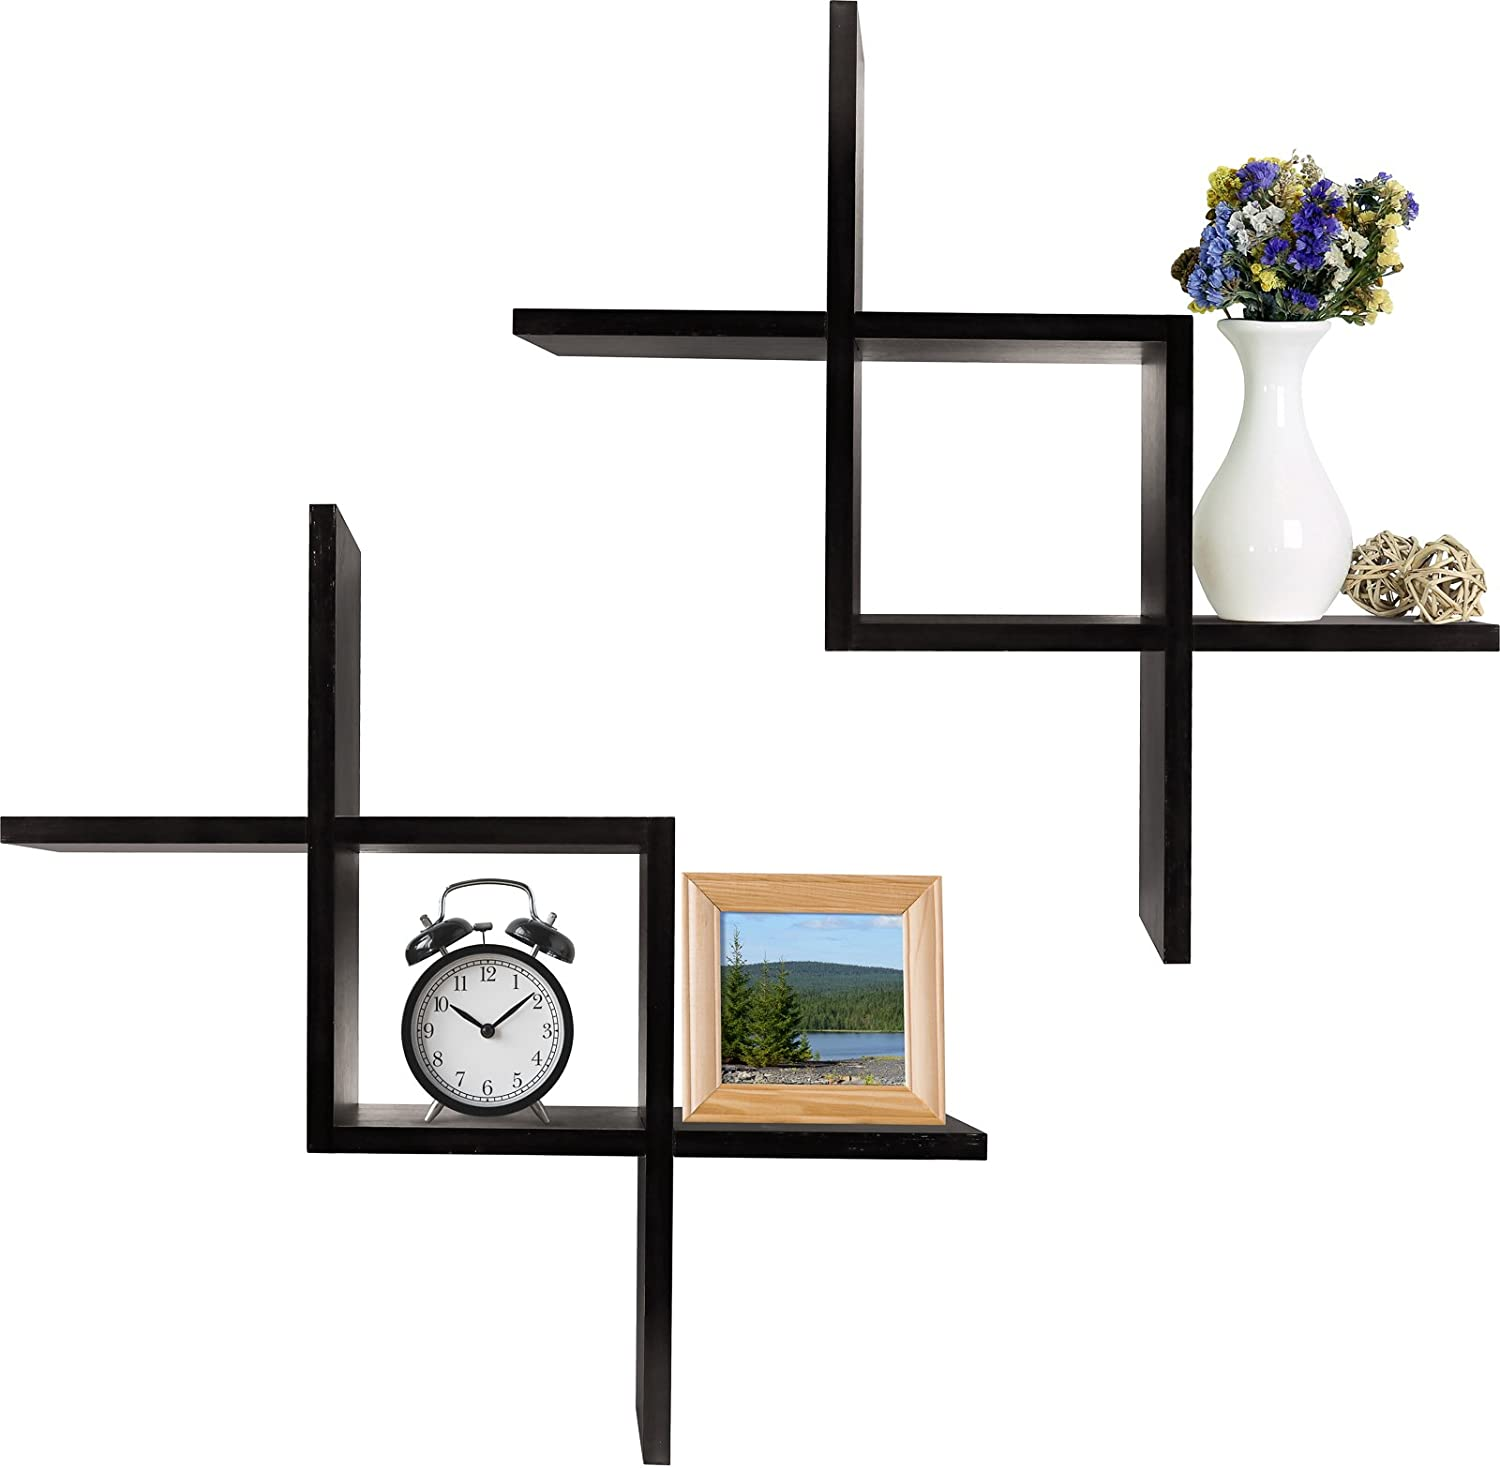 Greenco Criss Cross Intersecting Wall Mounted Floating Shelves- Espresso Finish